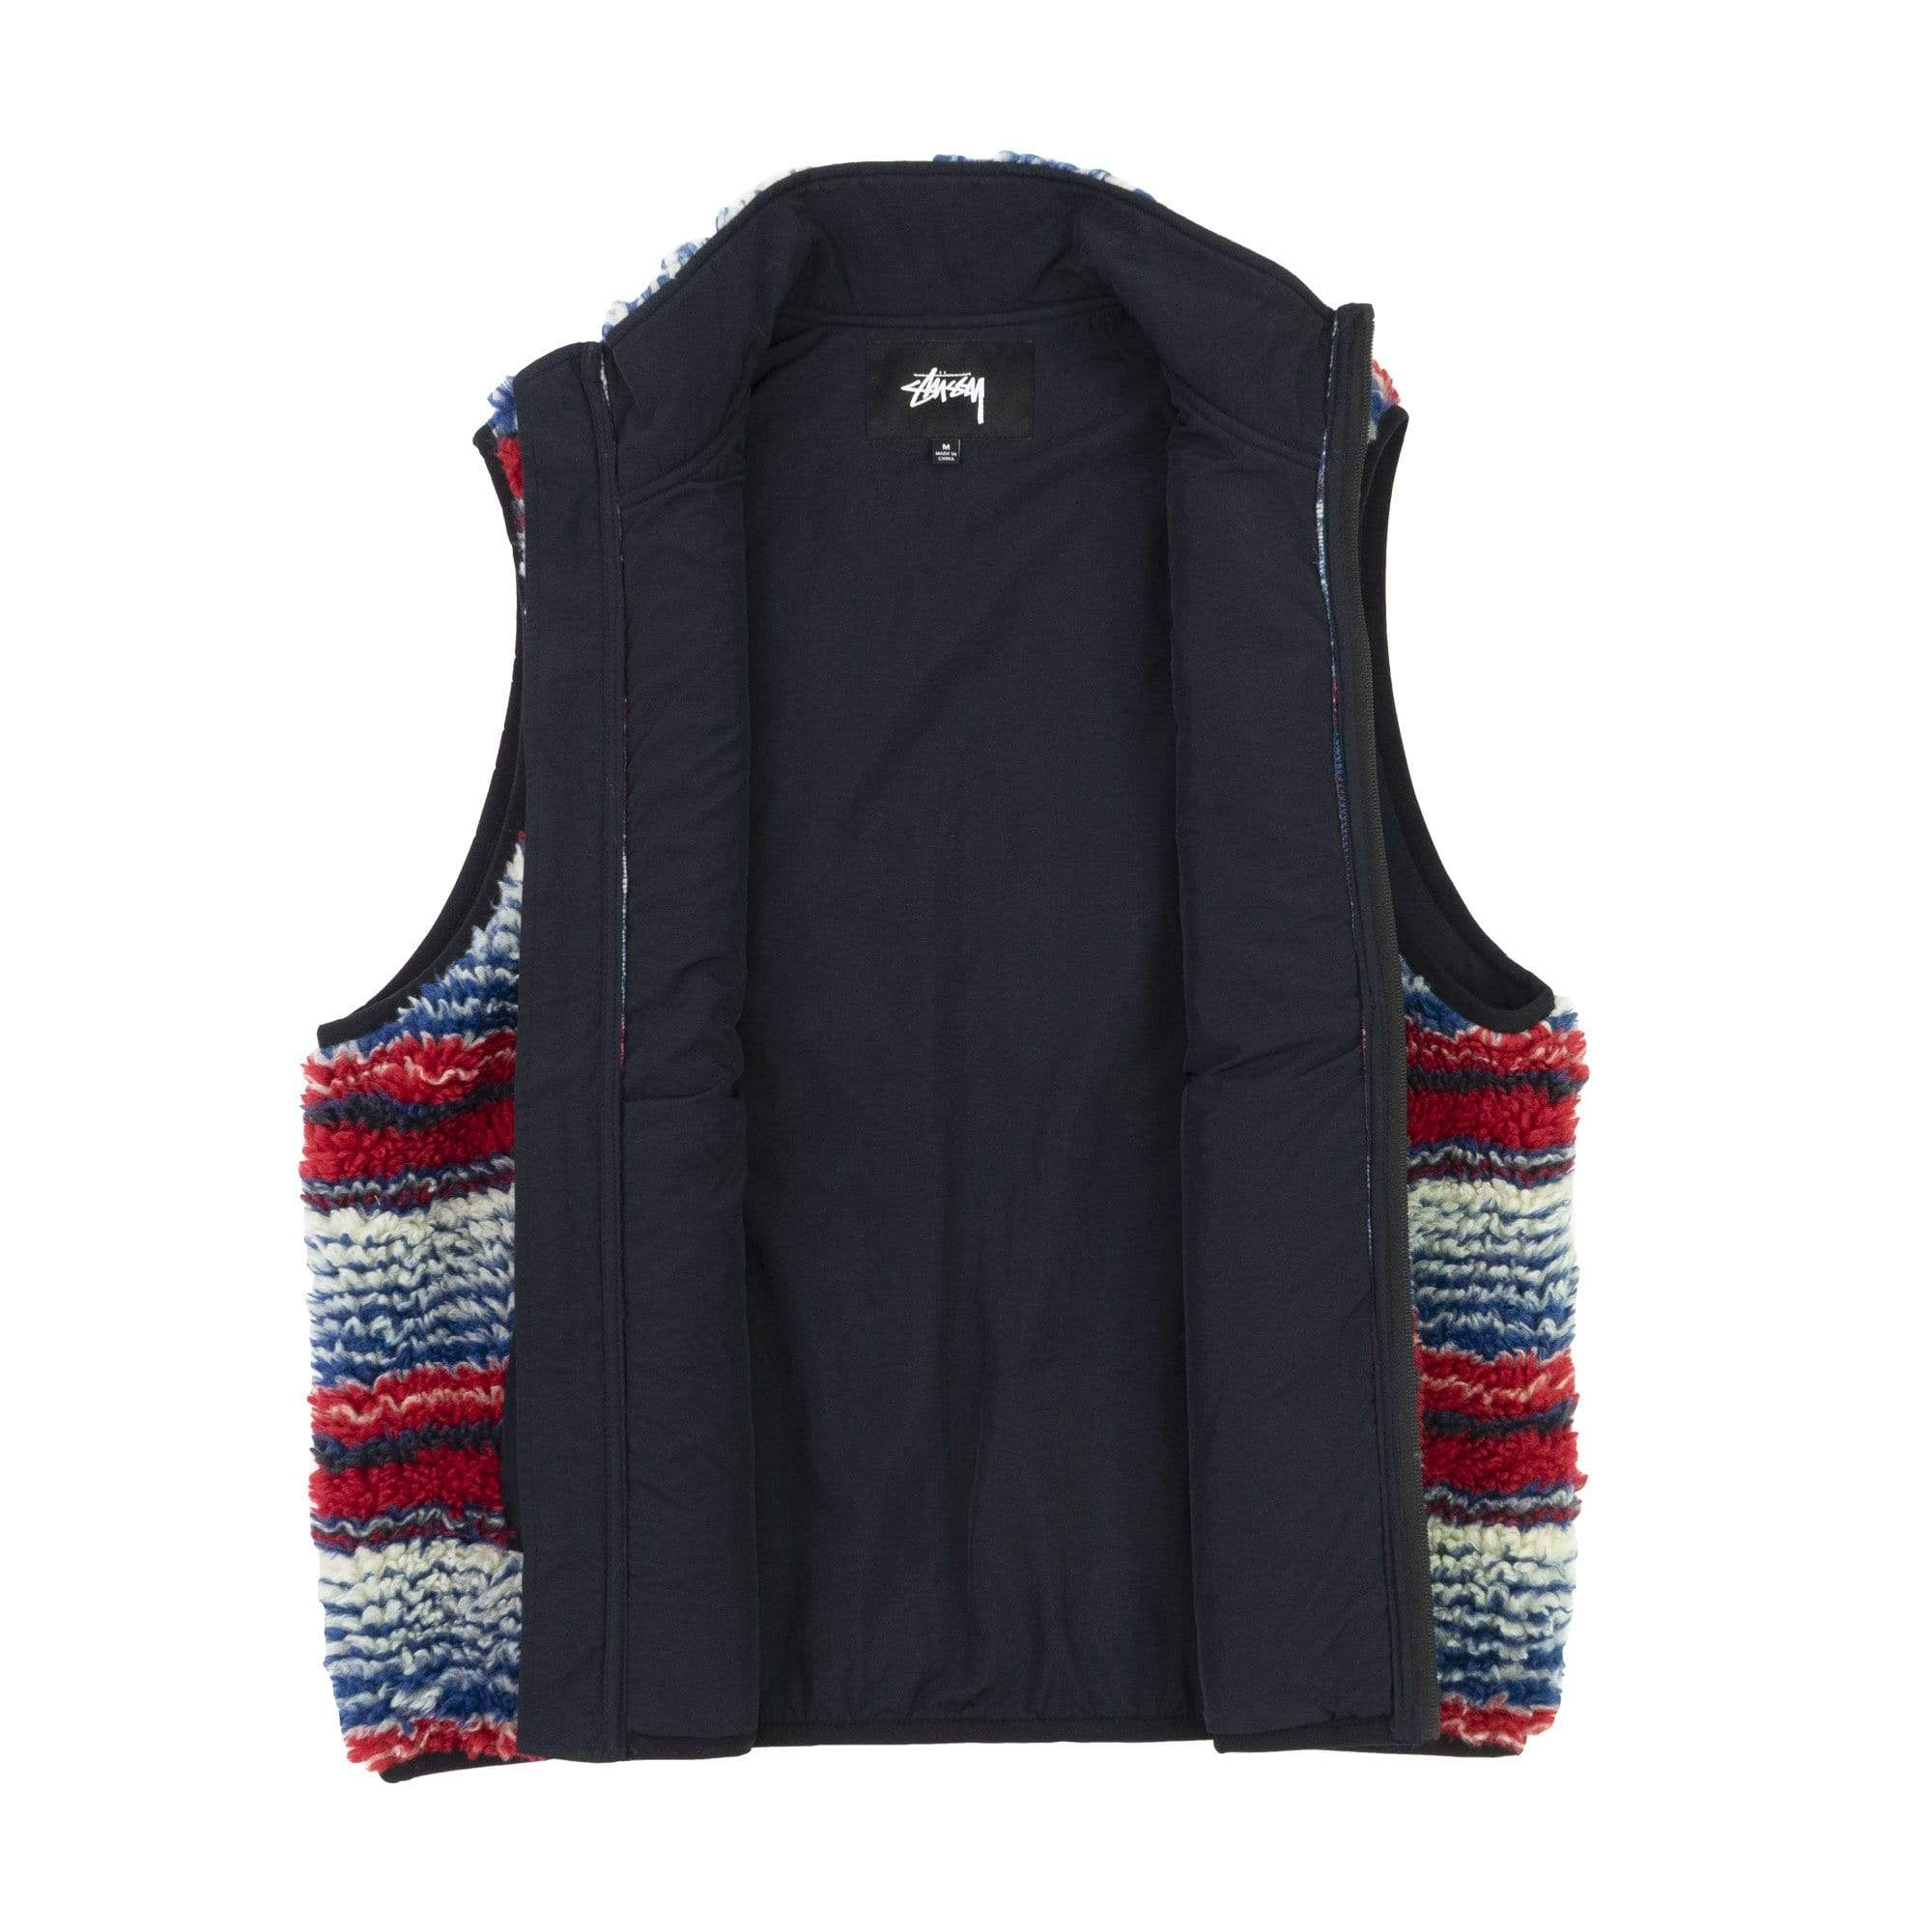 Stüssy Jacken Striped Sherpa Vest